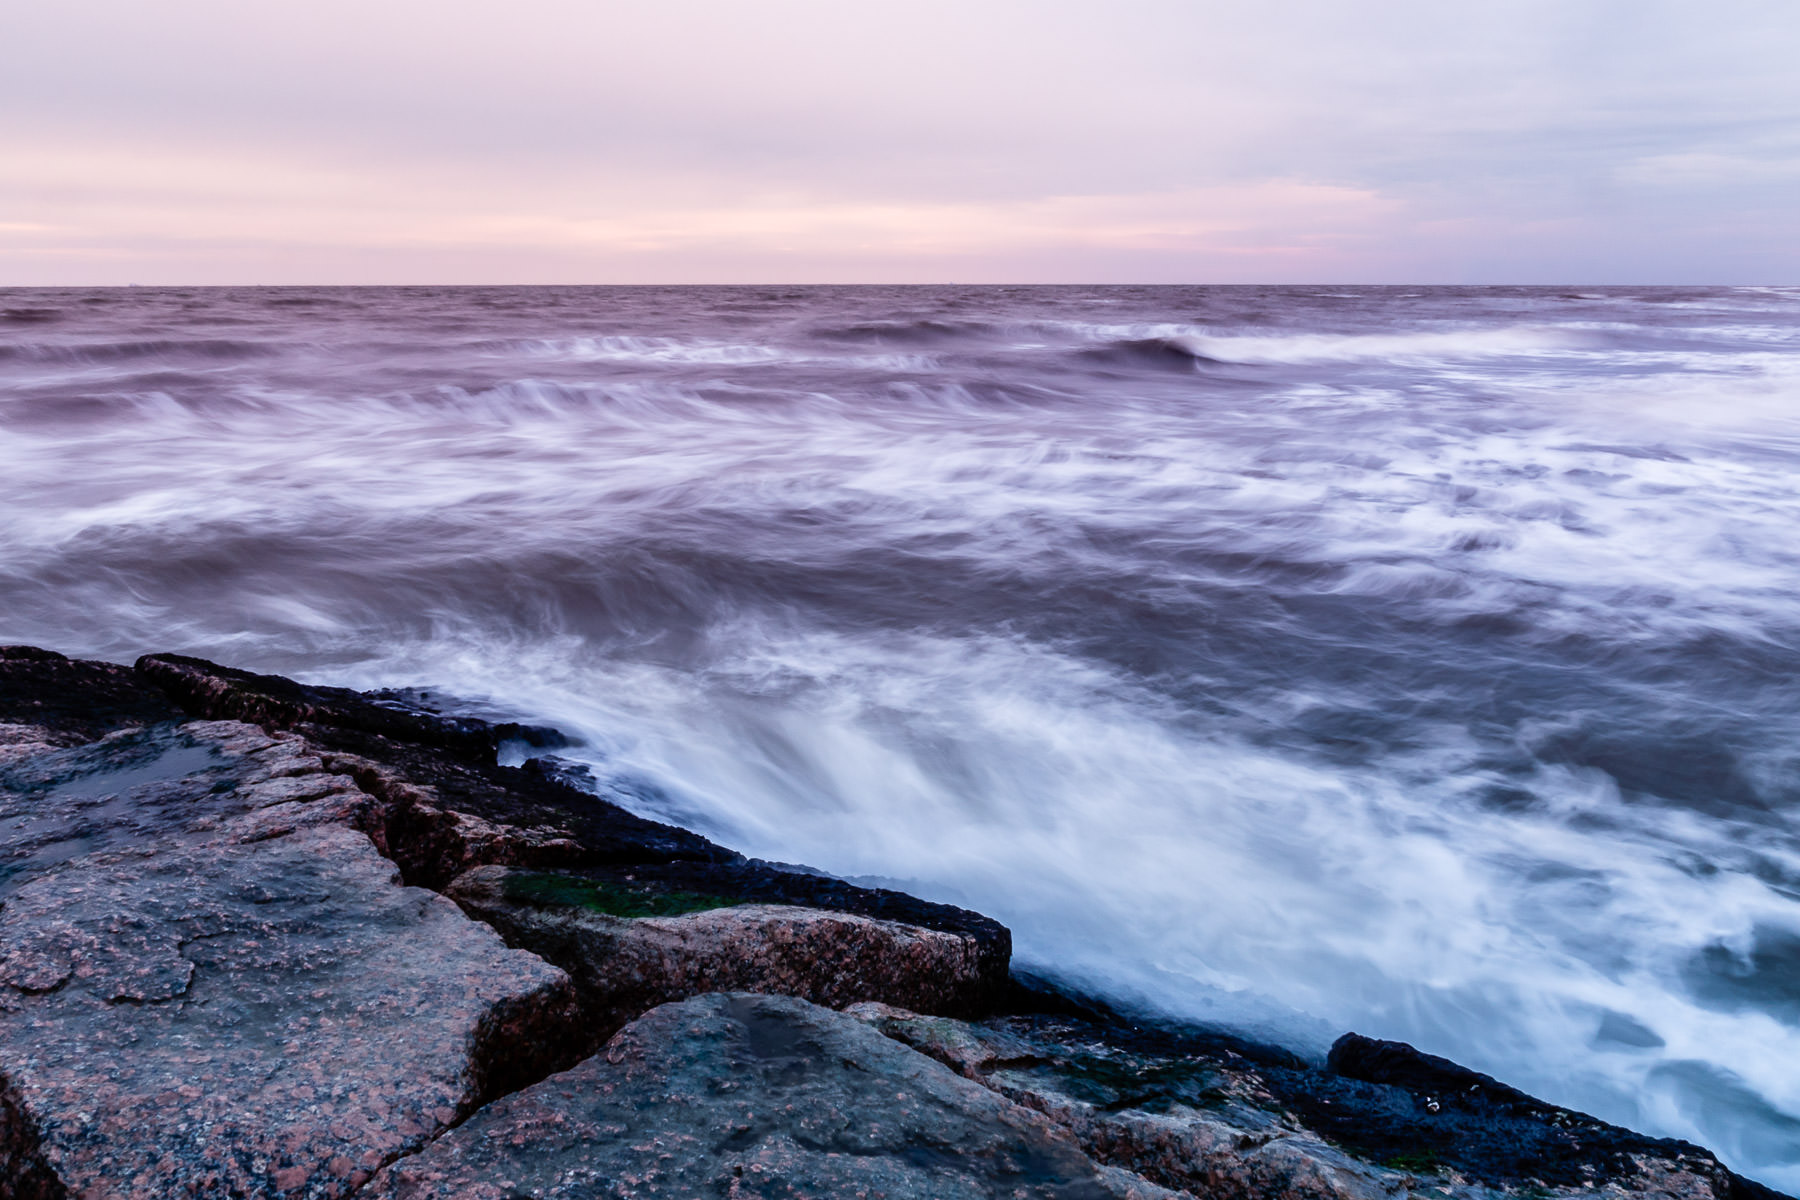 The waves of the Gulf of Mexico are smoothed by a long exposure as the sun begins to rise on the Galveston, Texas, beach.